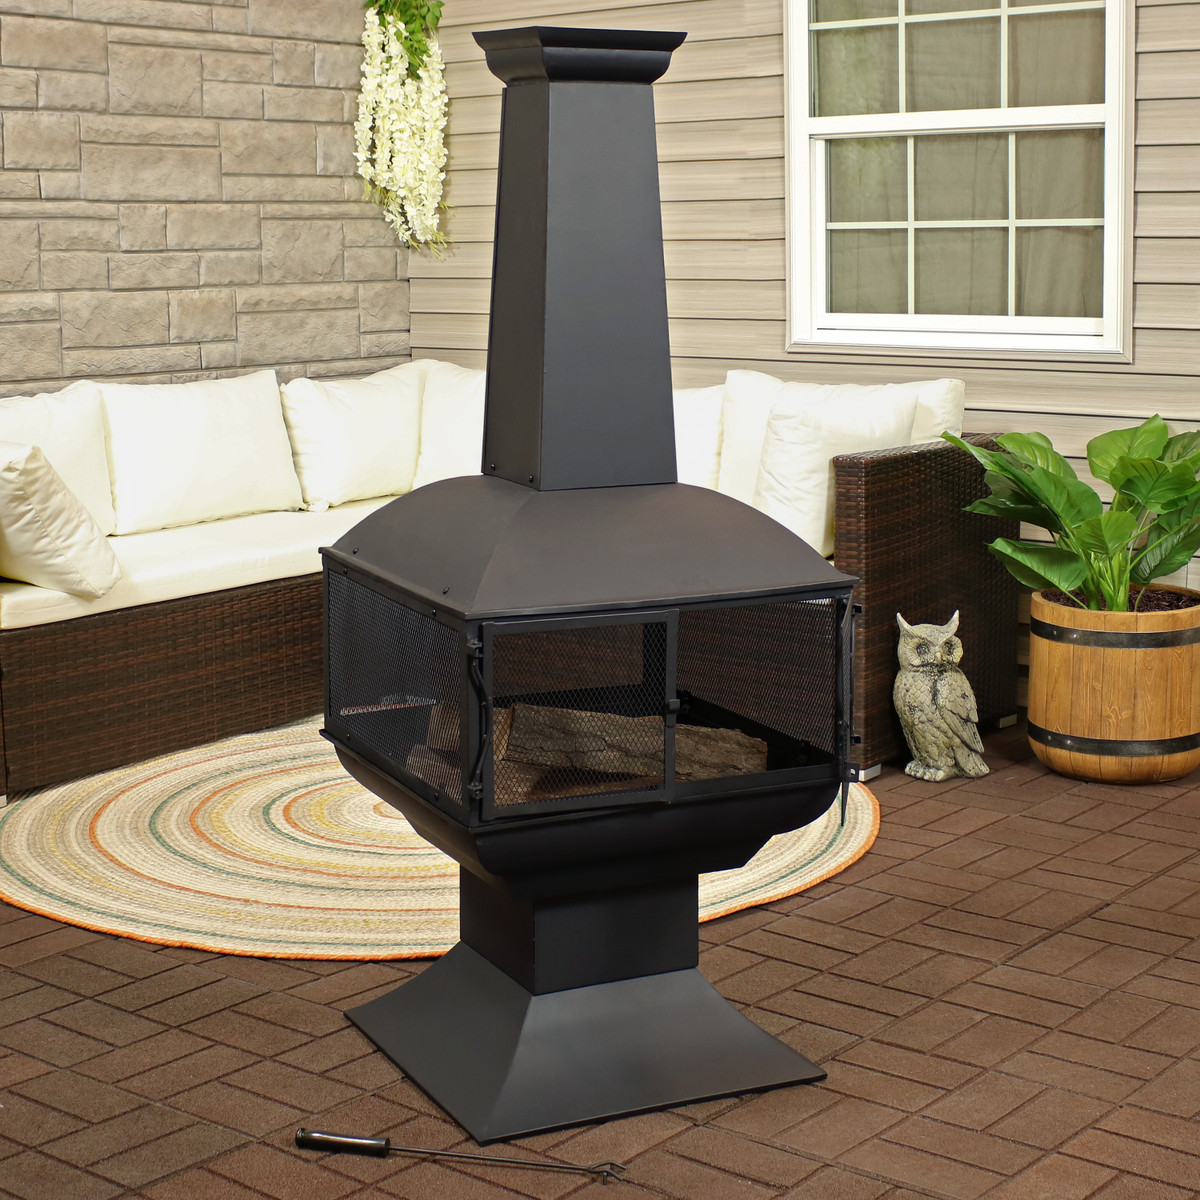 Sunnydaze Black Steel Wood Burning 360 Degree View Outdoor Chiminea Fire Pit With Poker 57 Inch